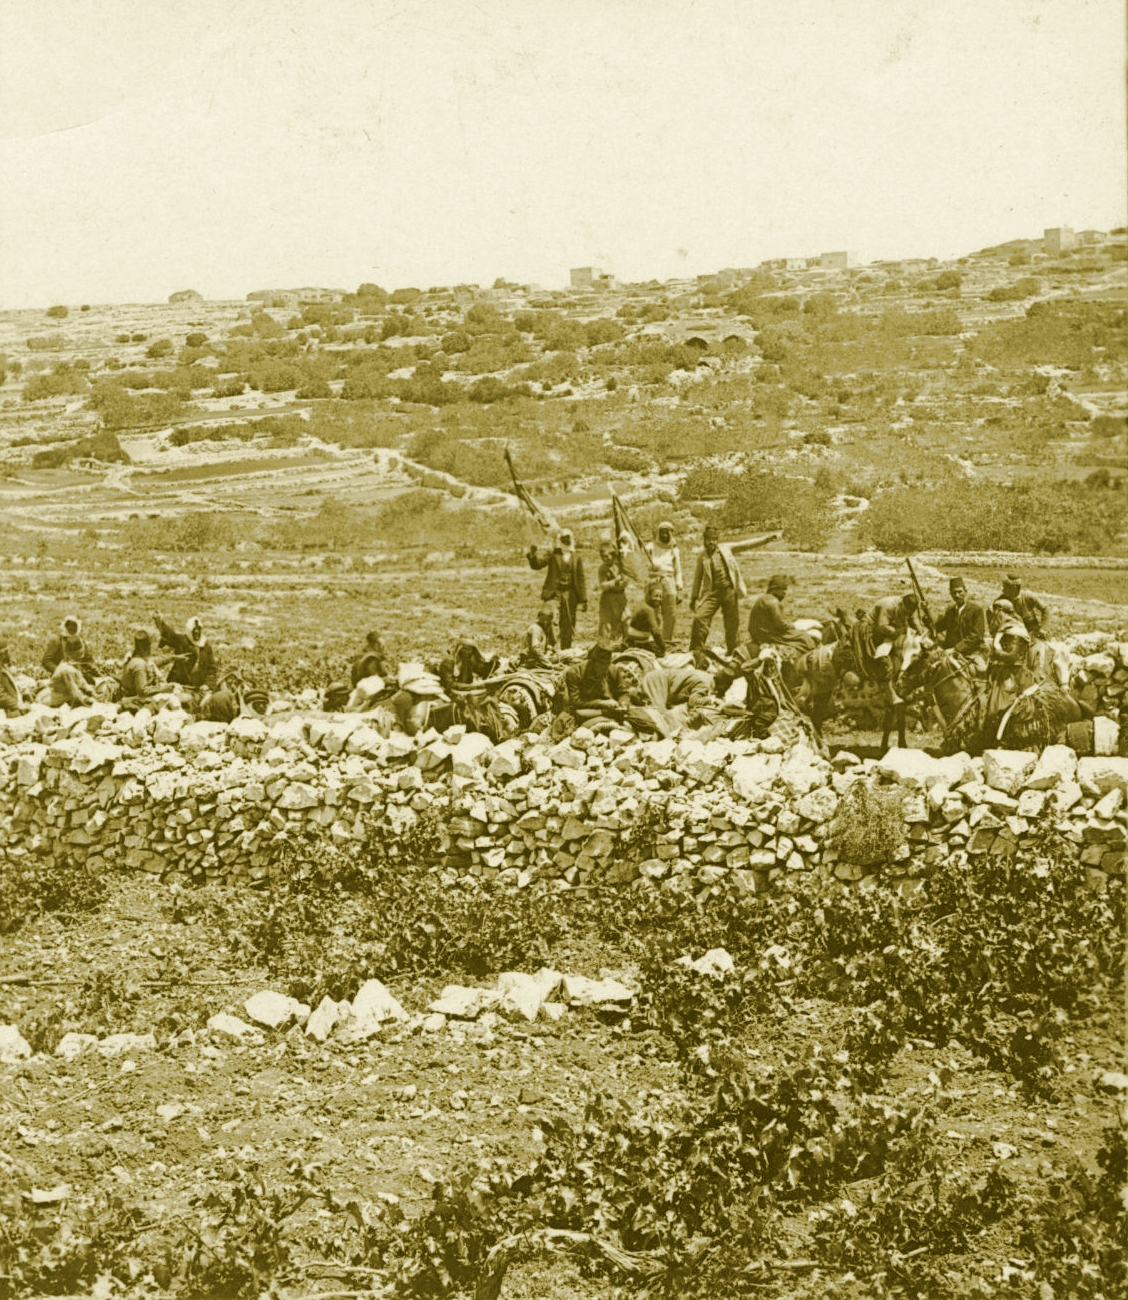 Ramallah - رام الله : RAMALLAH - A small caravan from Damascus travelling to Jerusalem, in the environs of Ramallah-Bireh, circa 1900s - Keystone-Mast Collection (Per Reem Ackall)